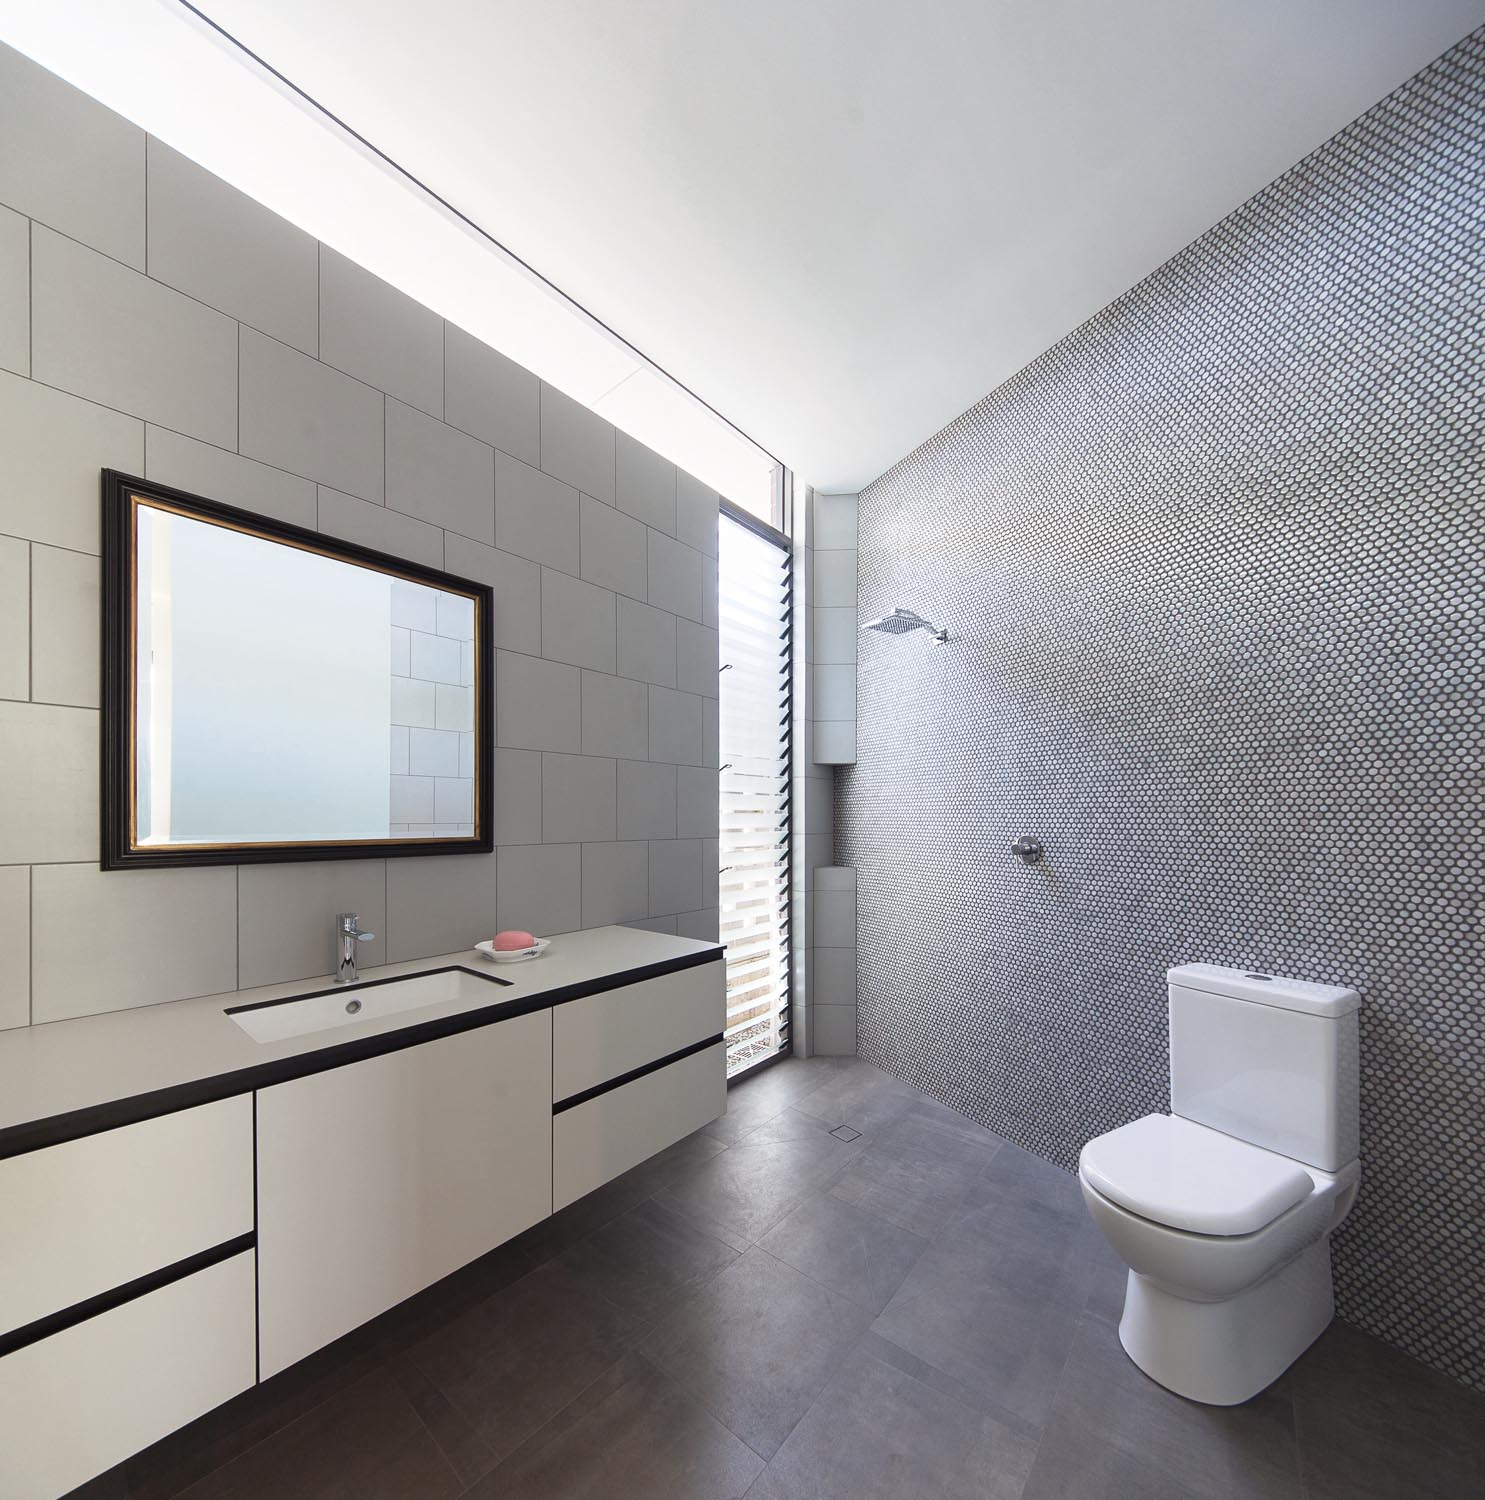 Simple, clean and stylish describe this bathroom